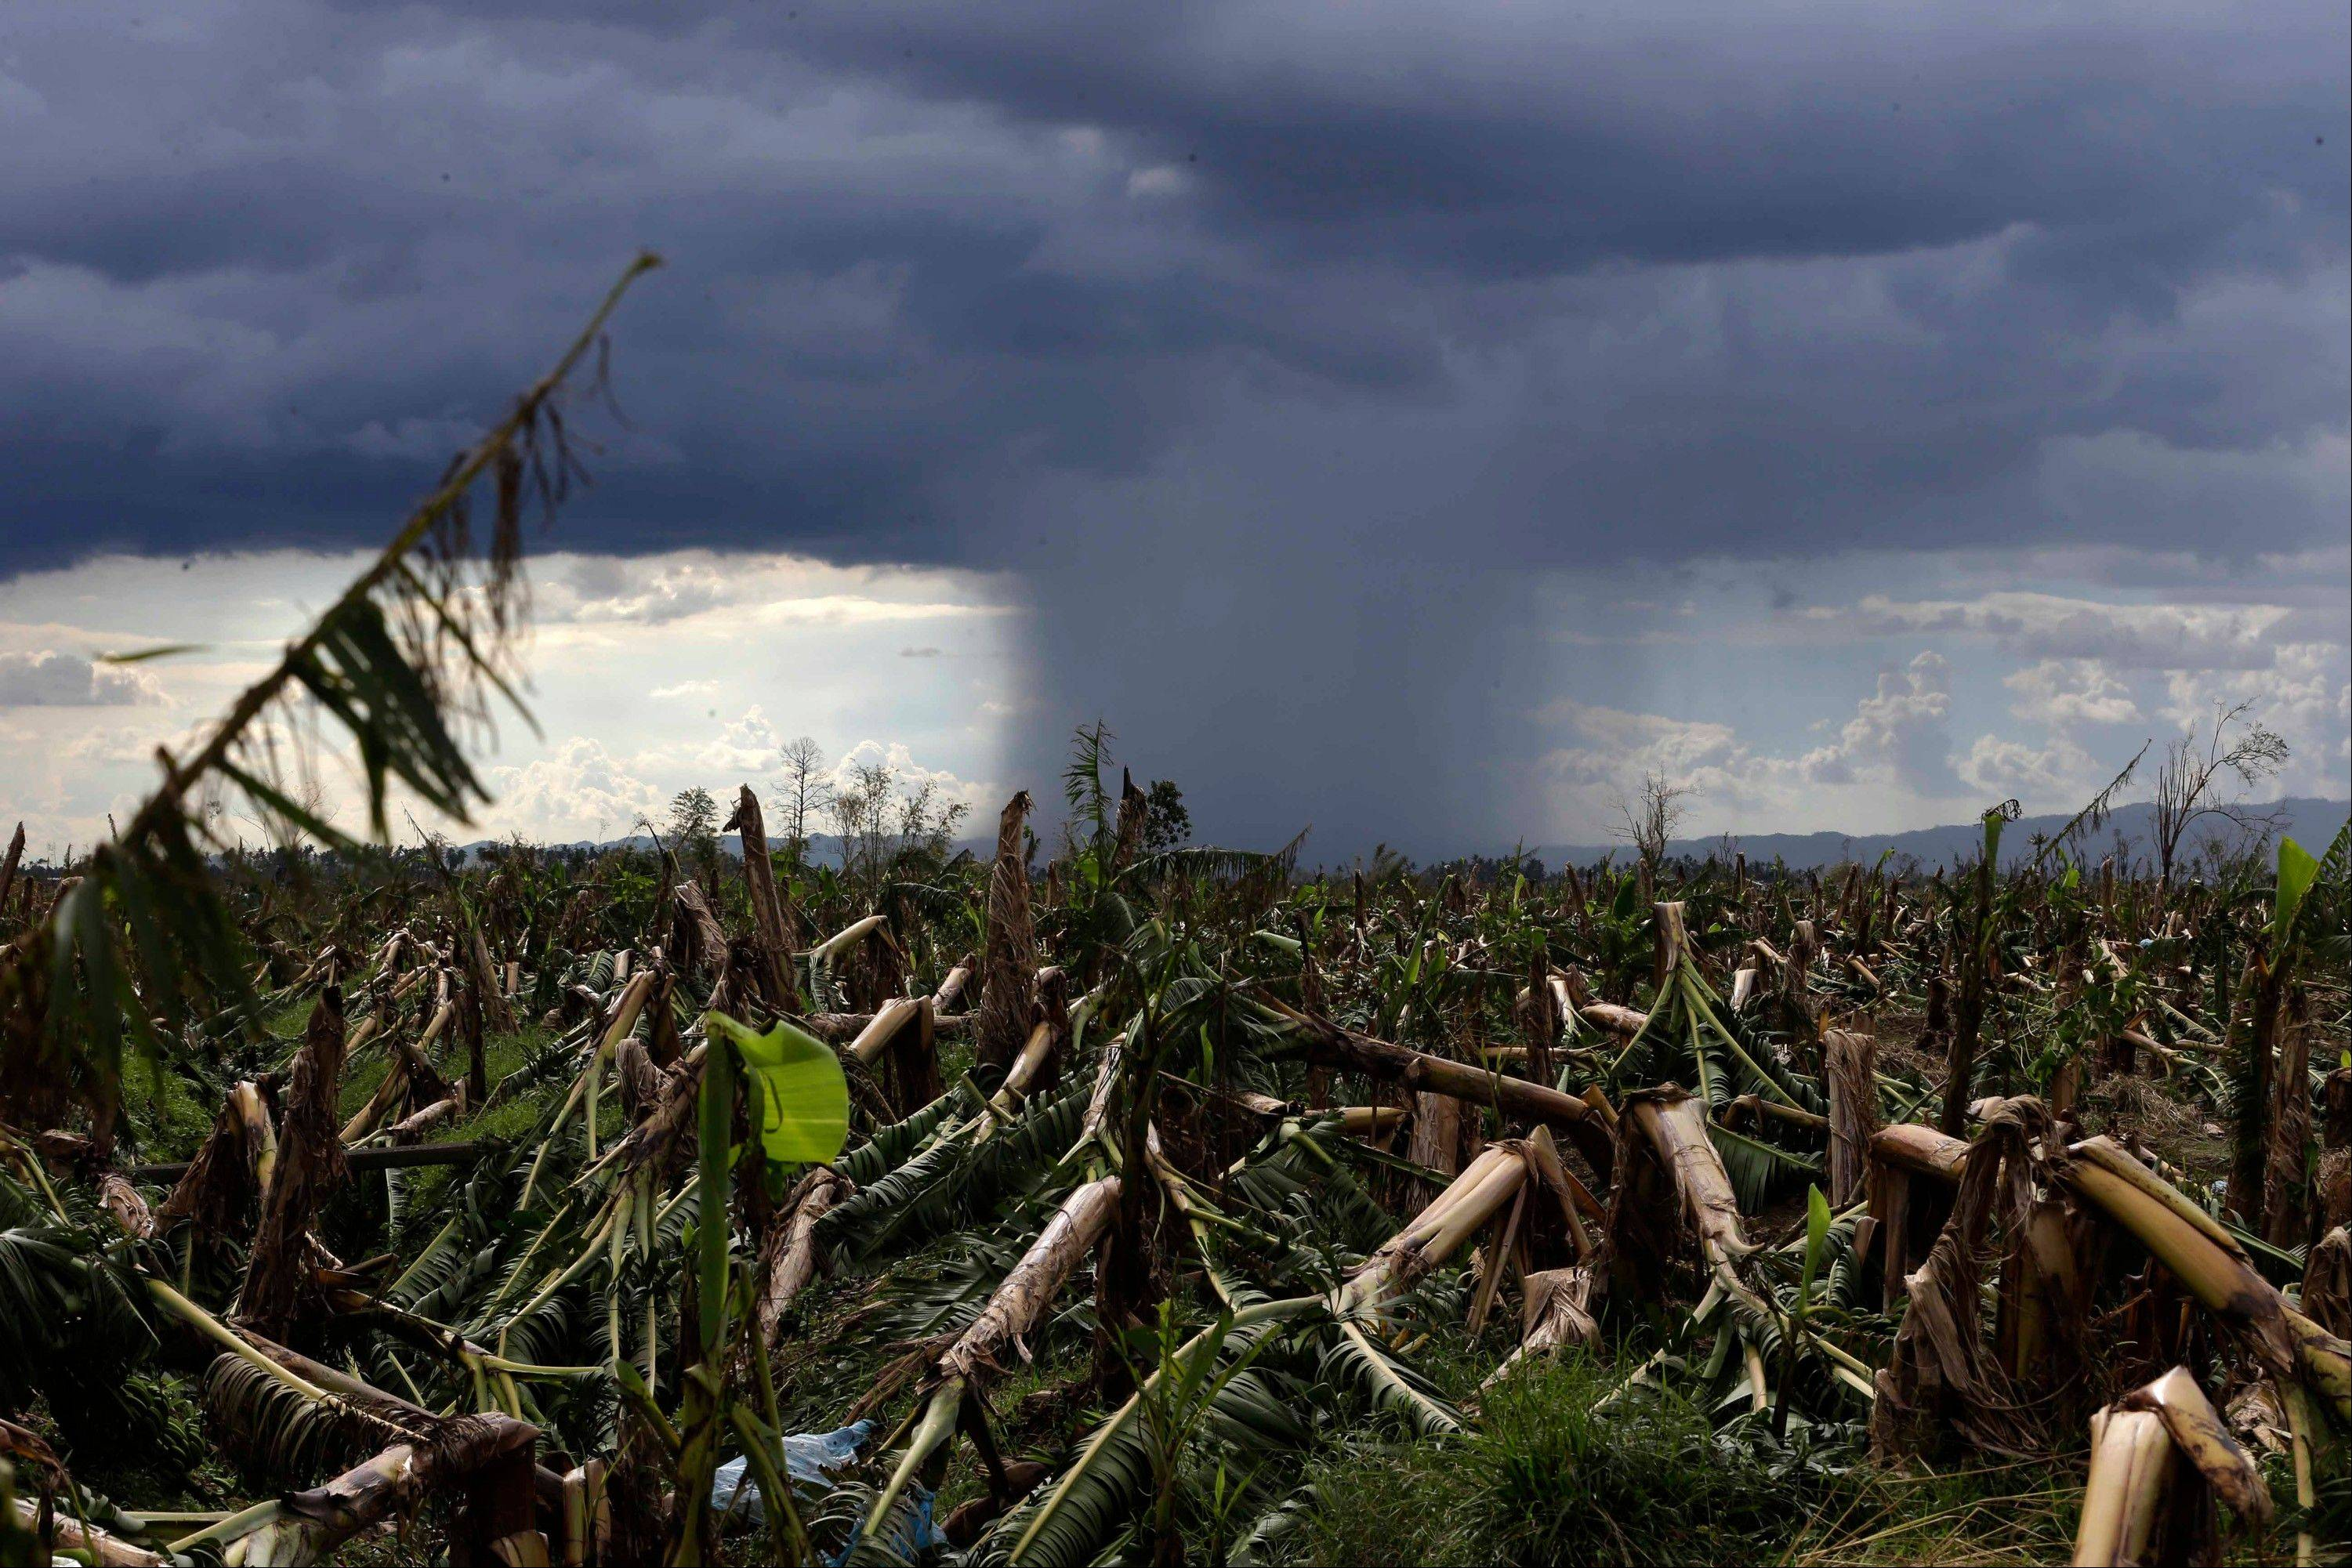 A rare cloud formation is seen amidst a destroyed banana plantation, four days after typhoon Bopha left hundreds dead and rendered extensive damage to agriculture in southern Philippines.